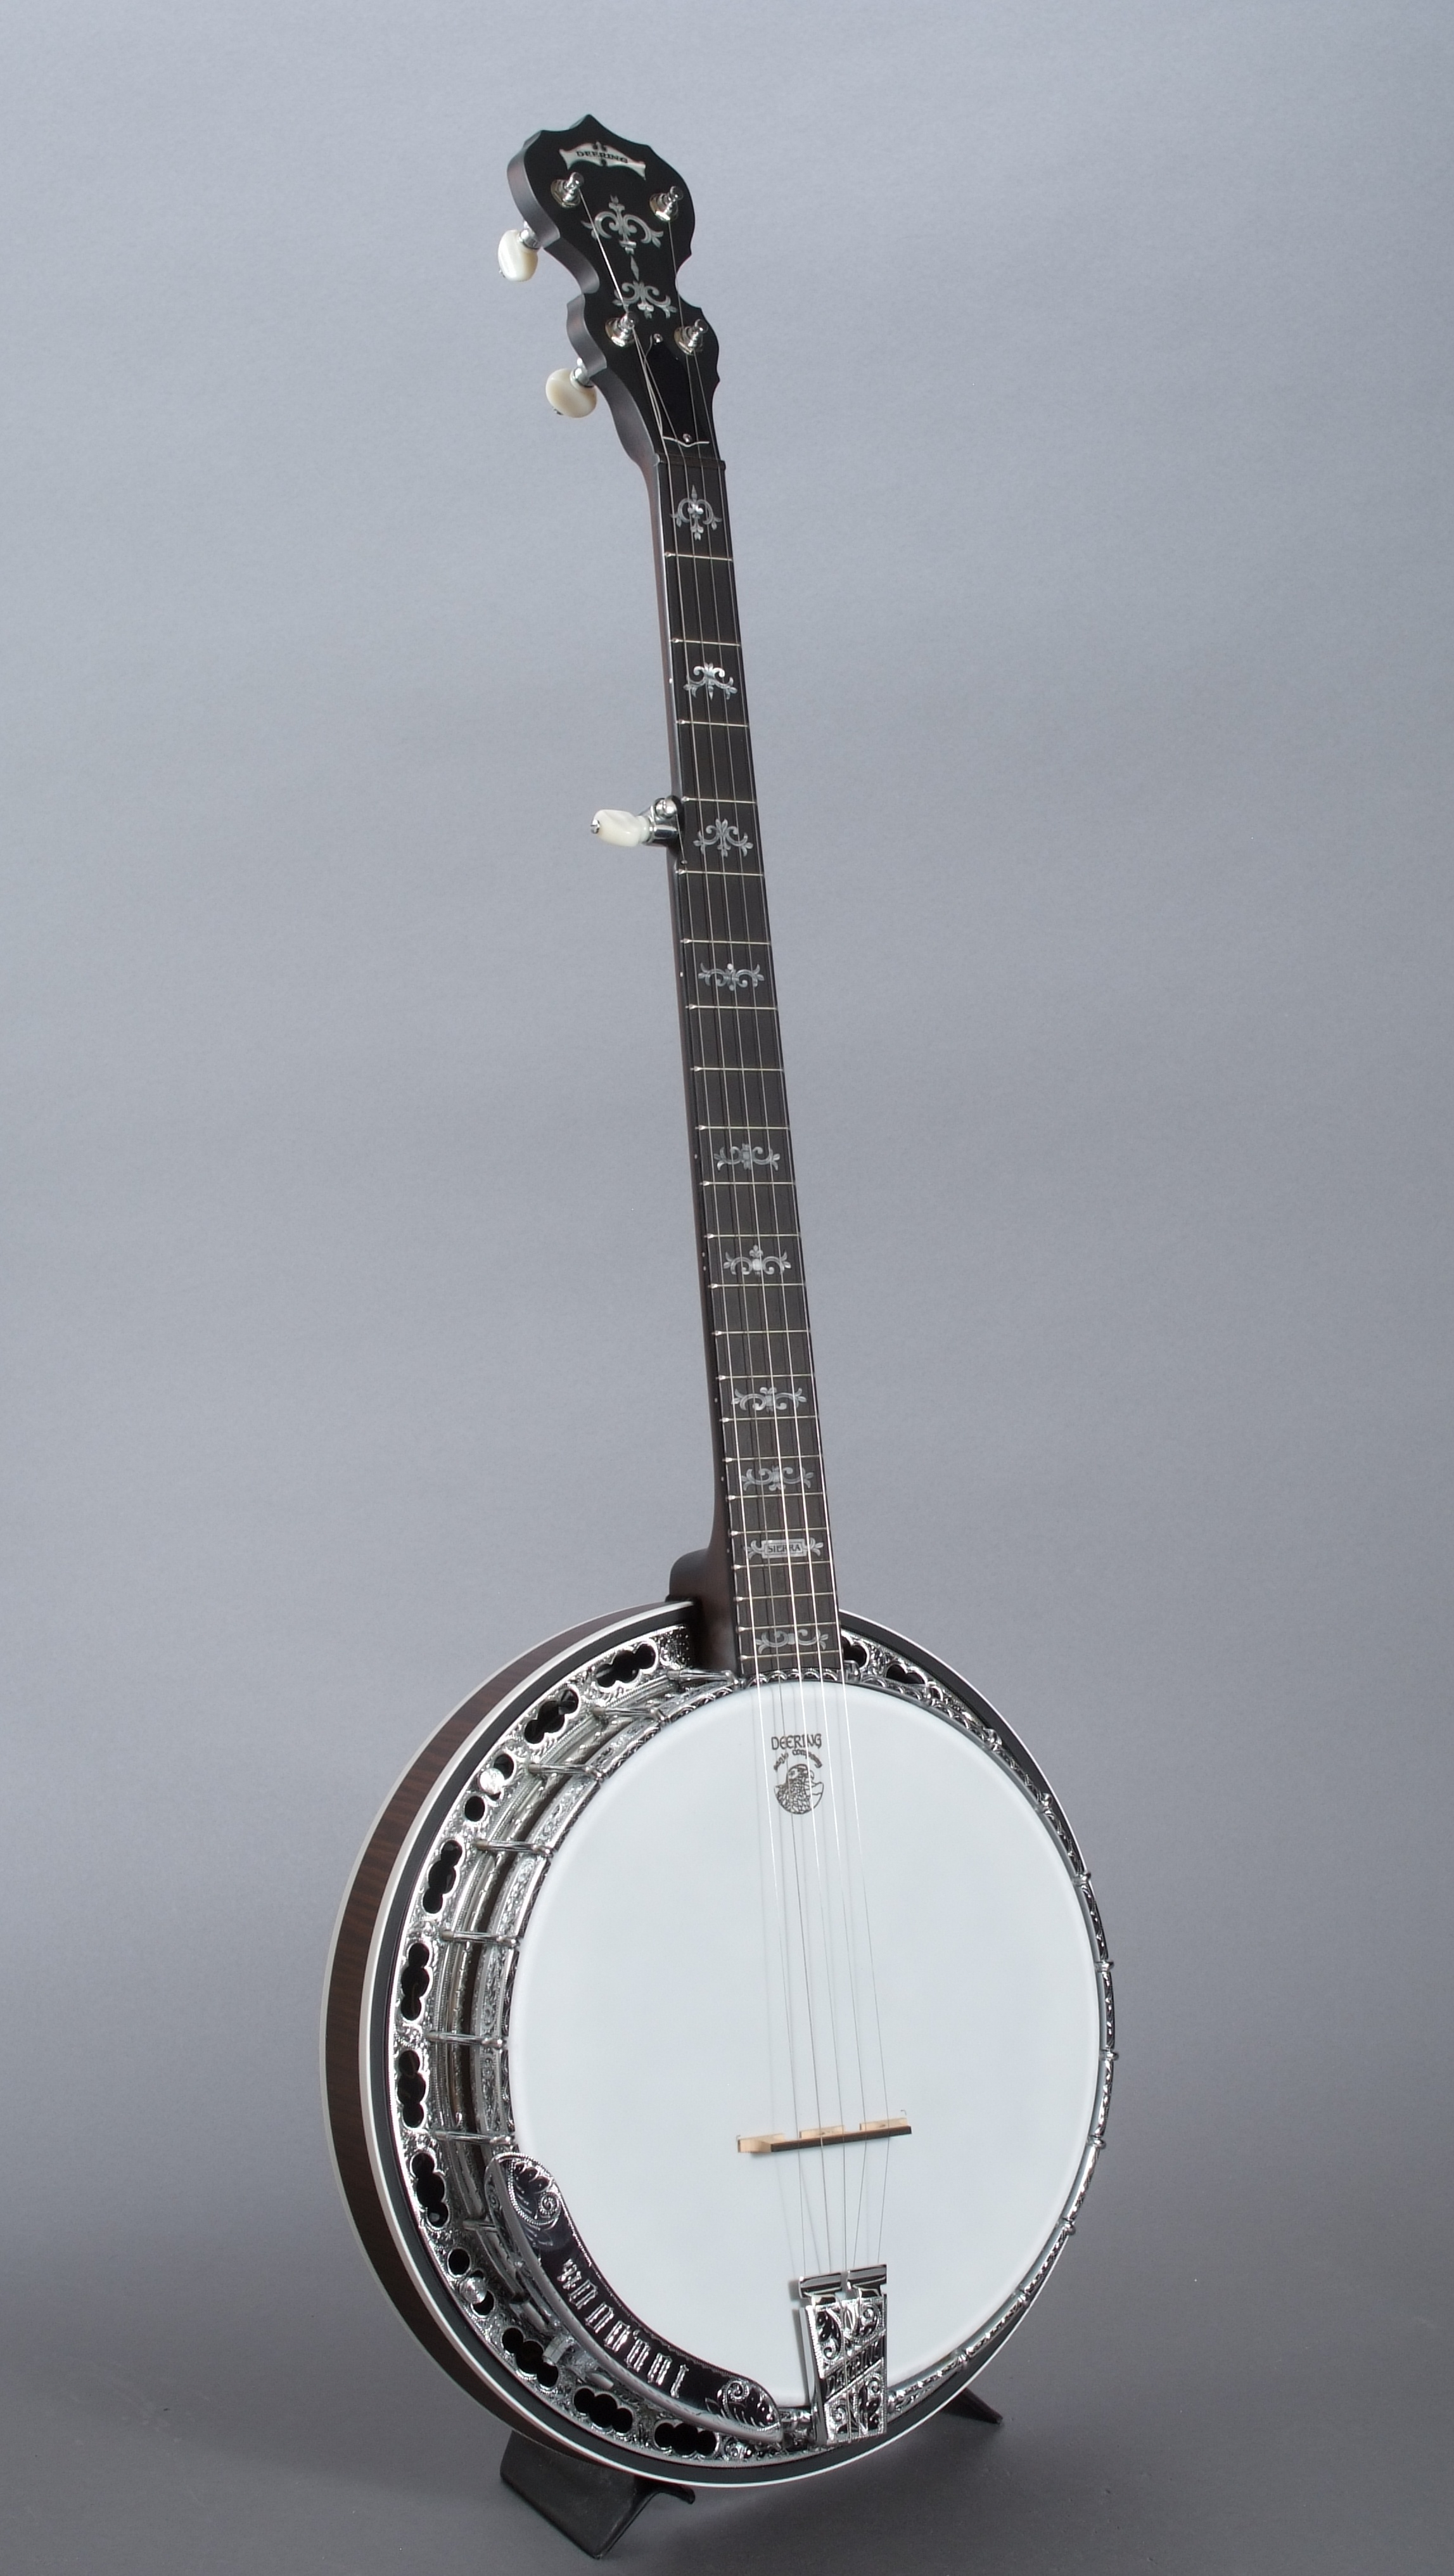 100,000th banjo full shot - crop.jpg